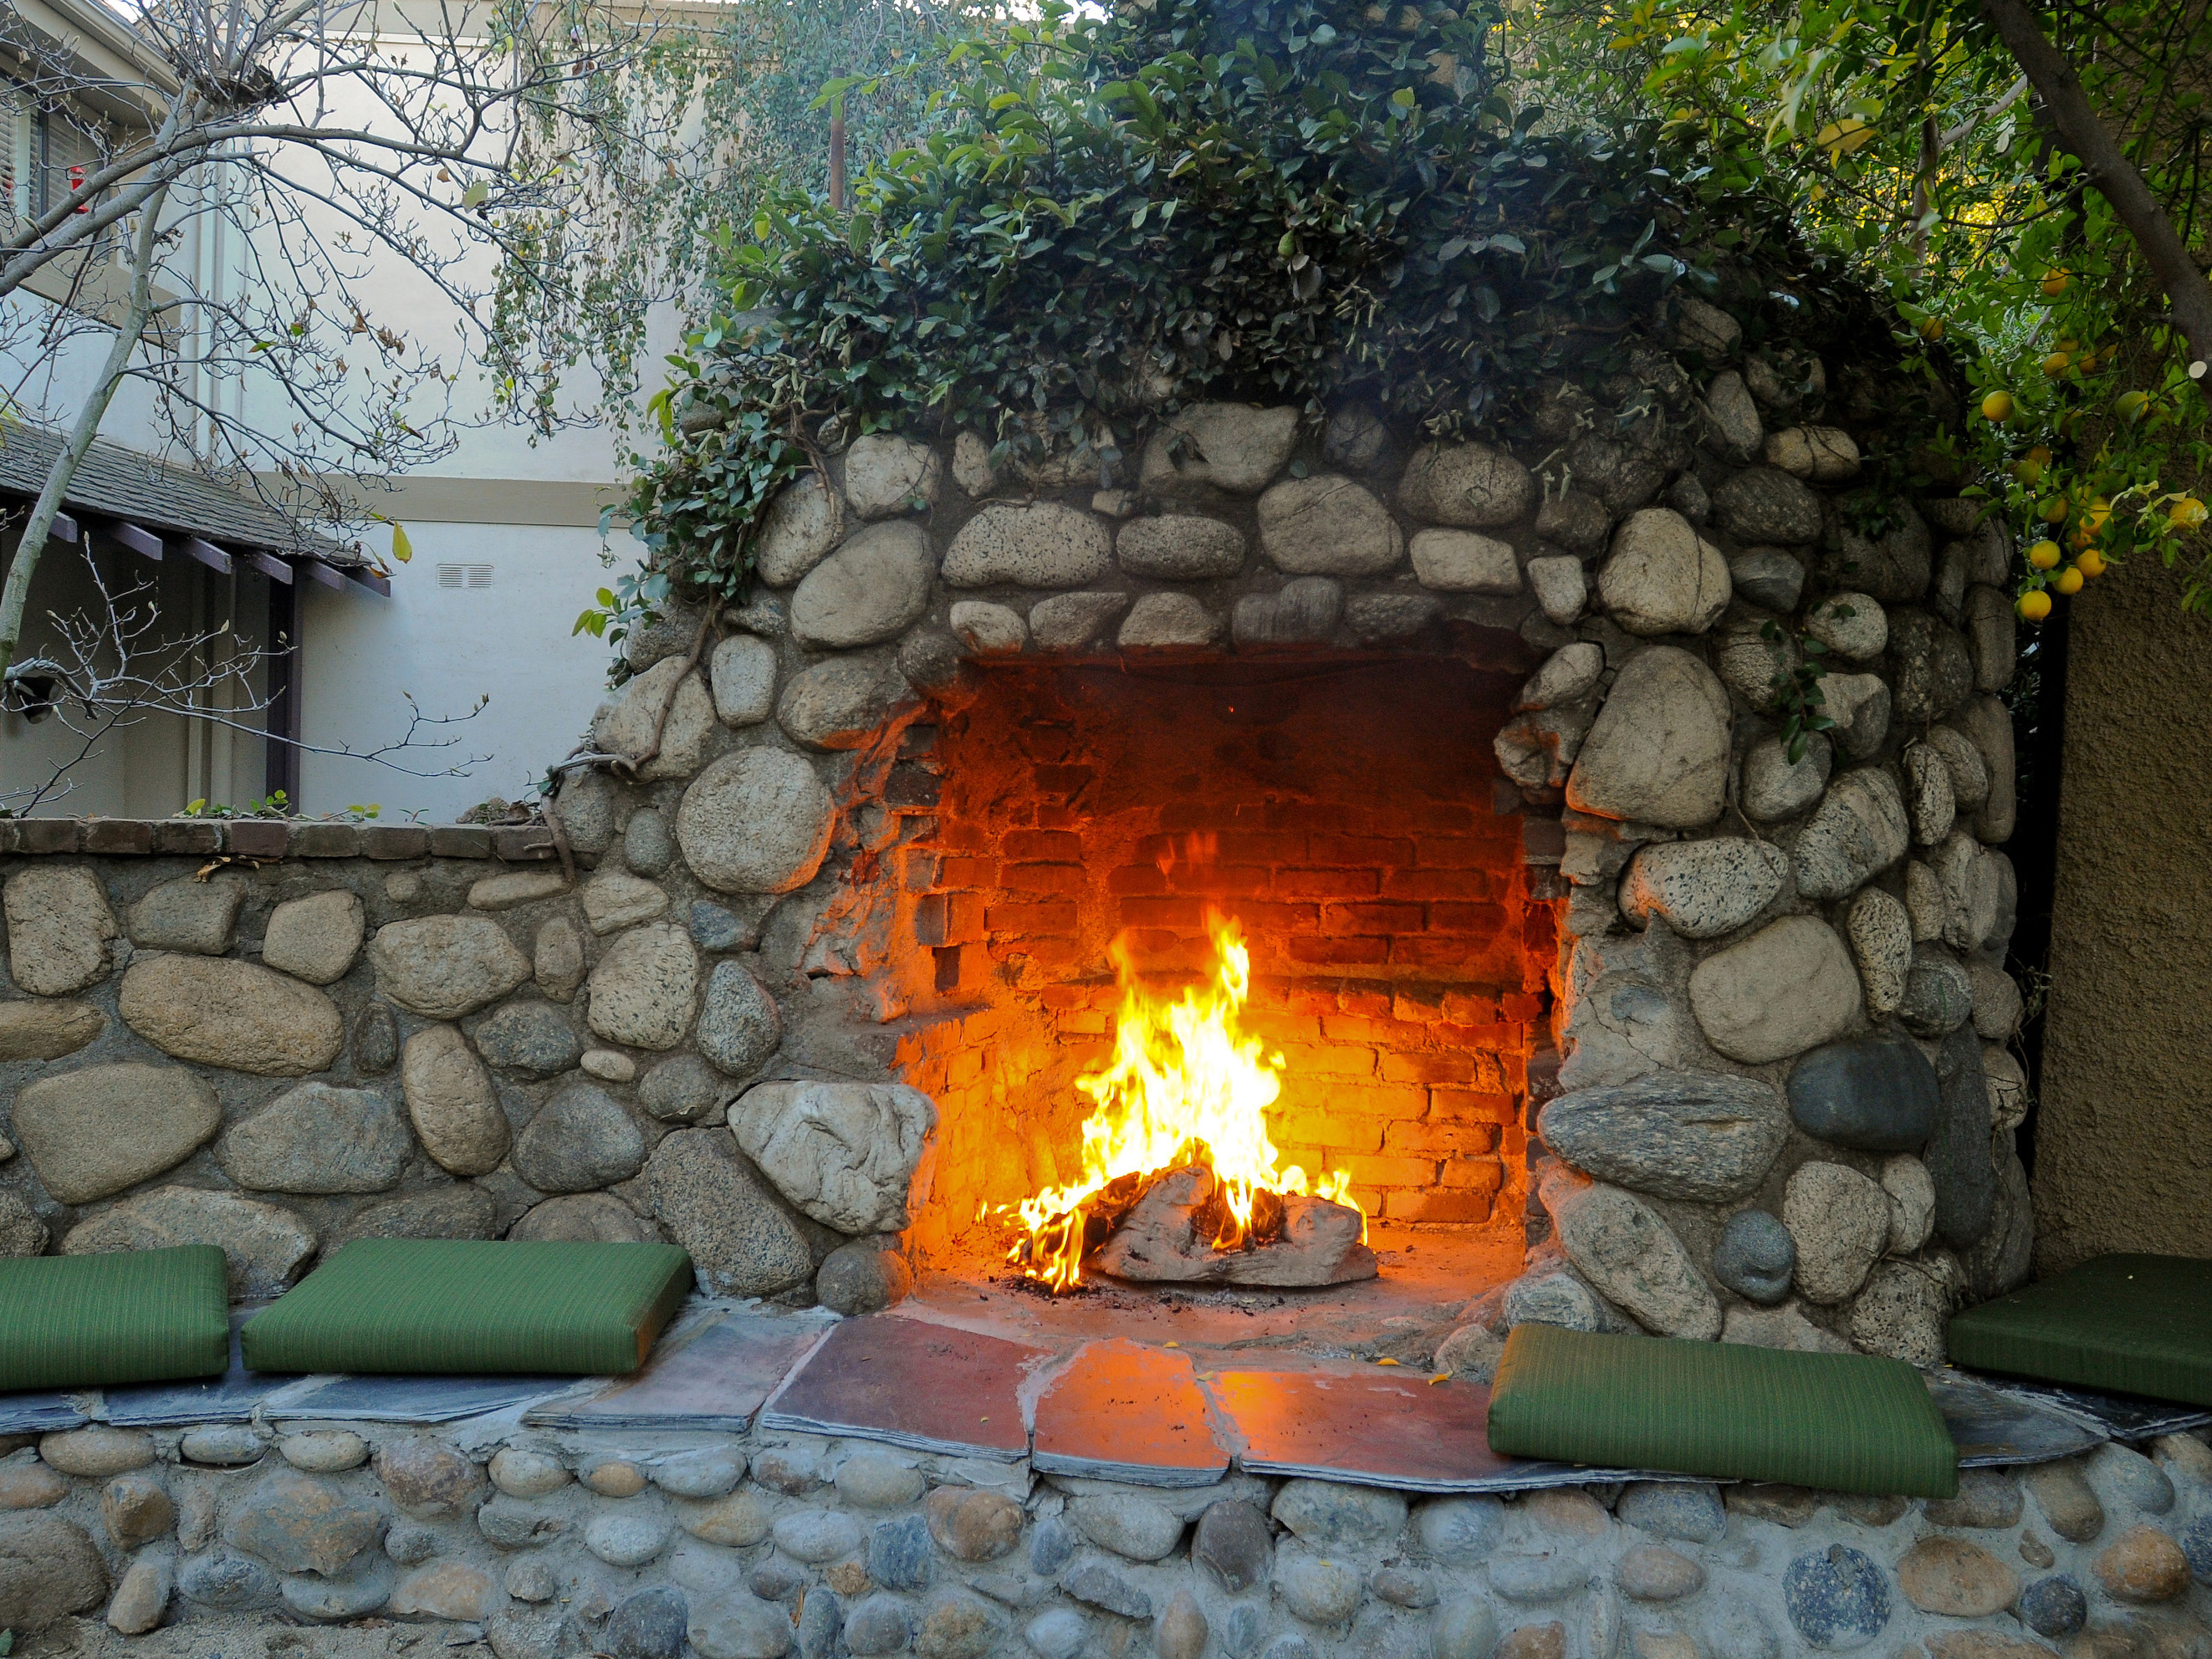 New Landscaping Trends for 2017 - Lane's Landscaping Supply on Fireplace In Yard id=97157